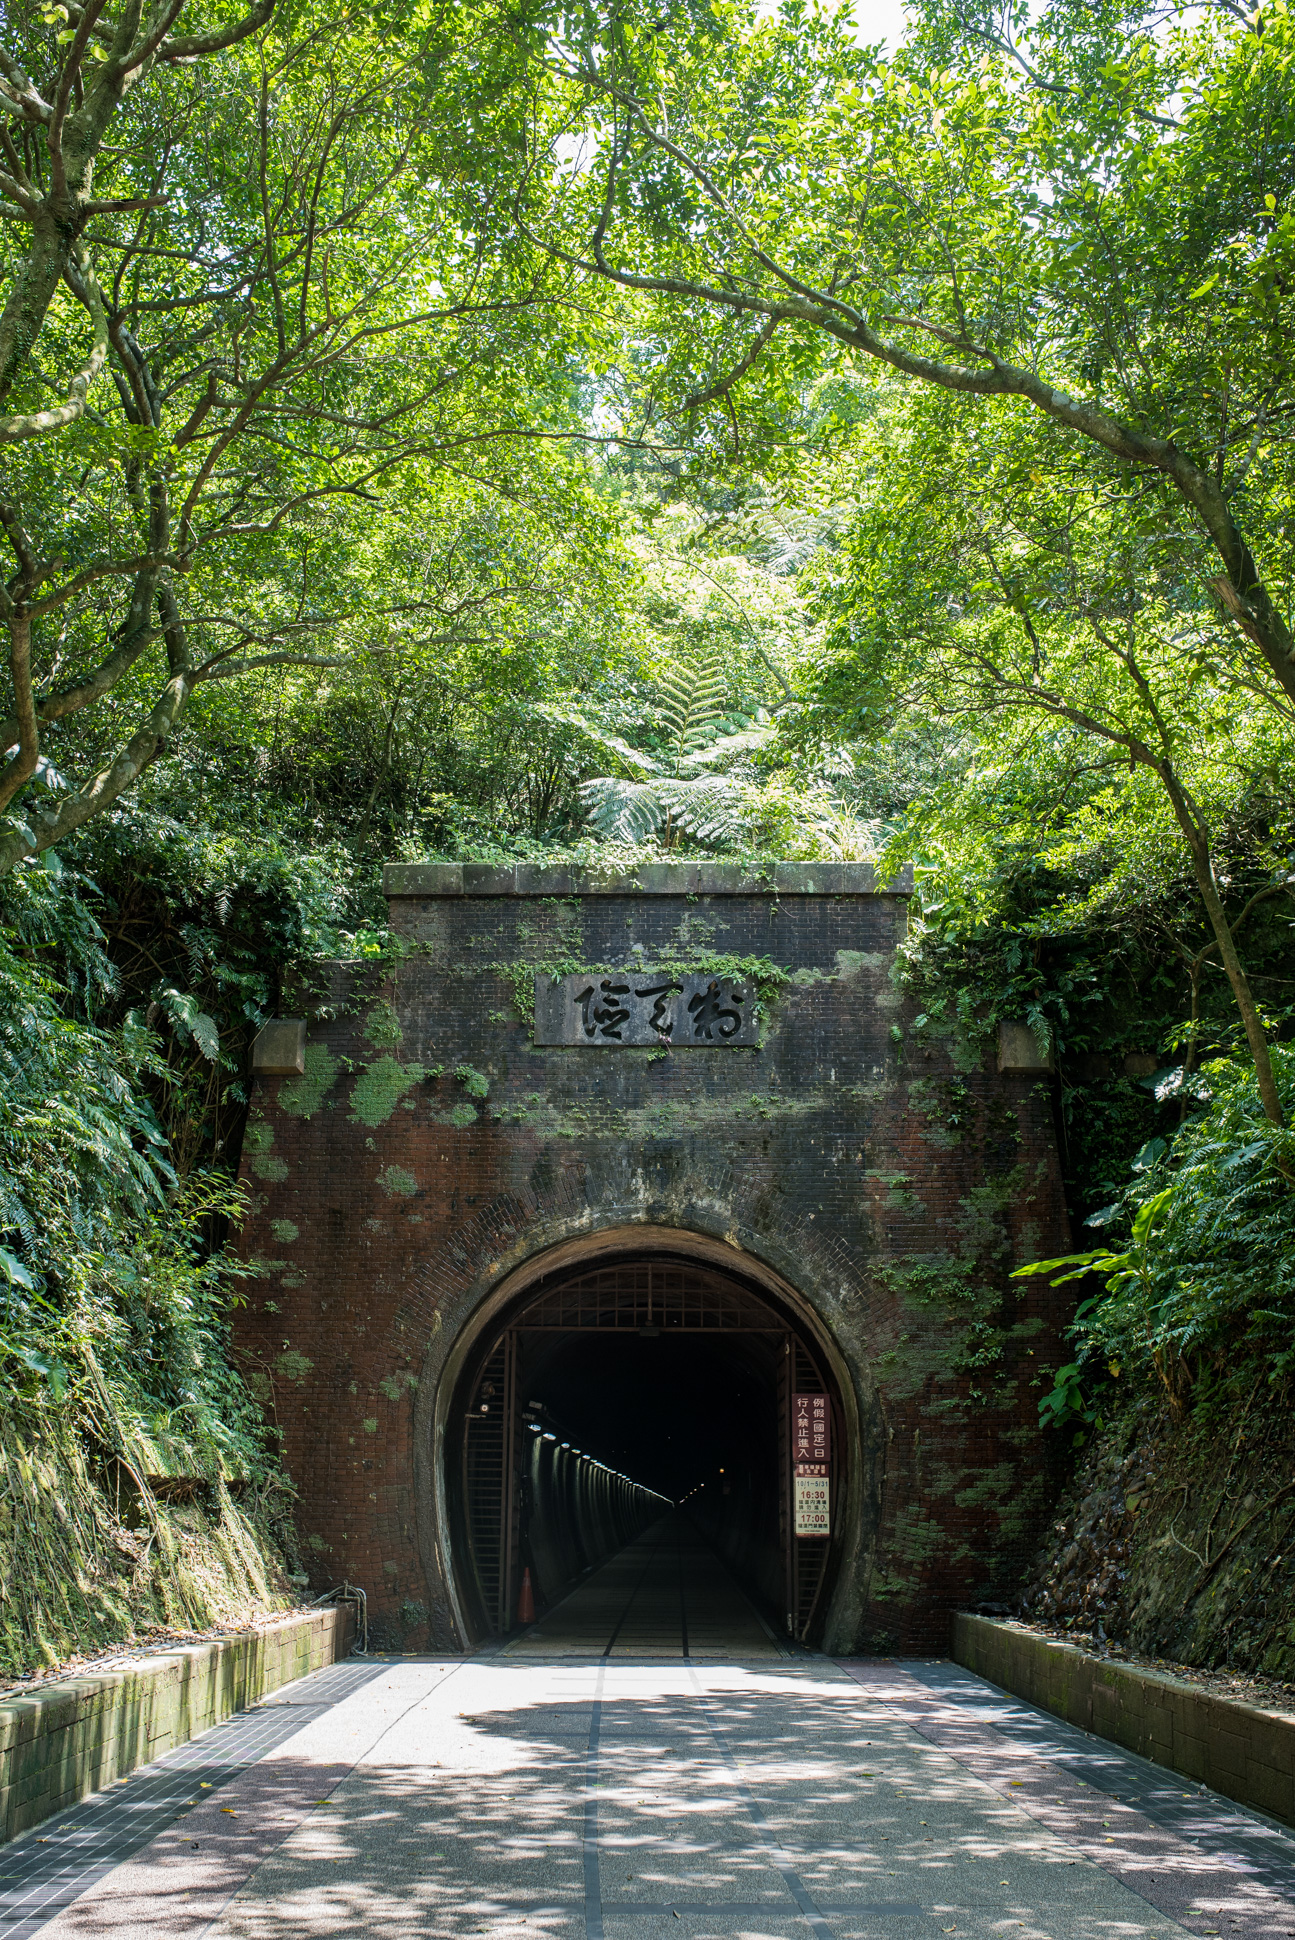 Caoling old tunnel